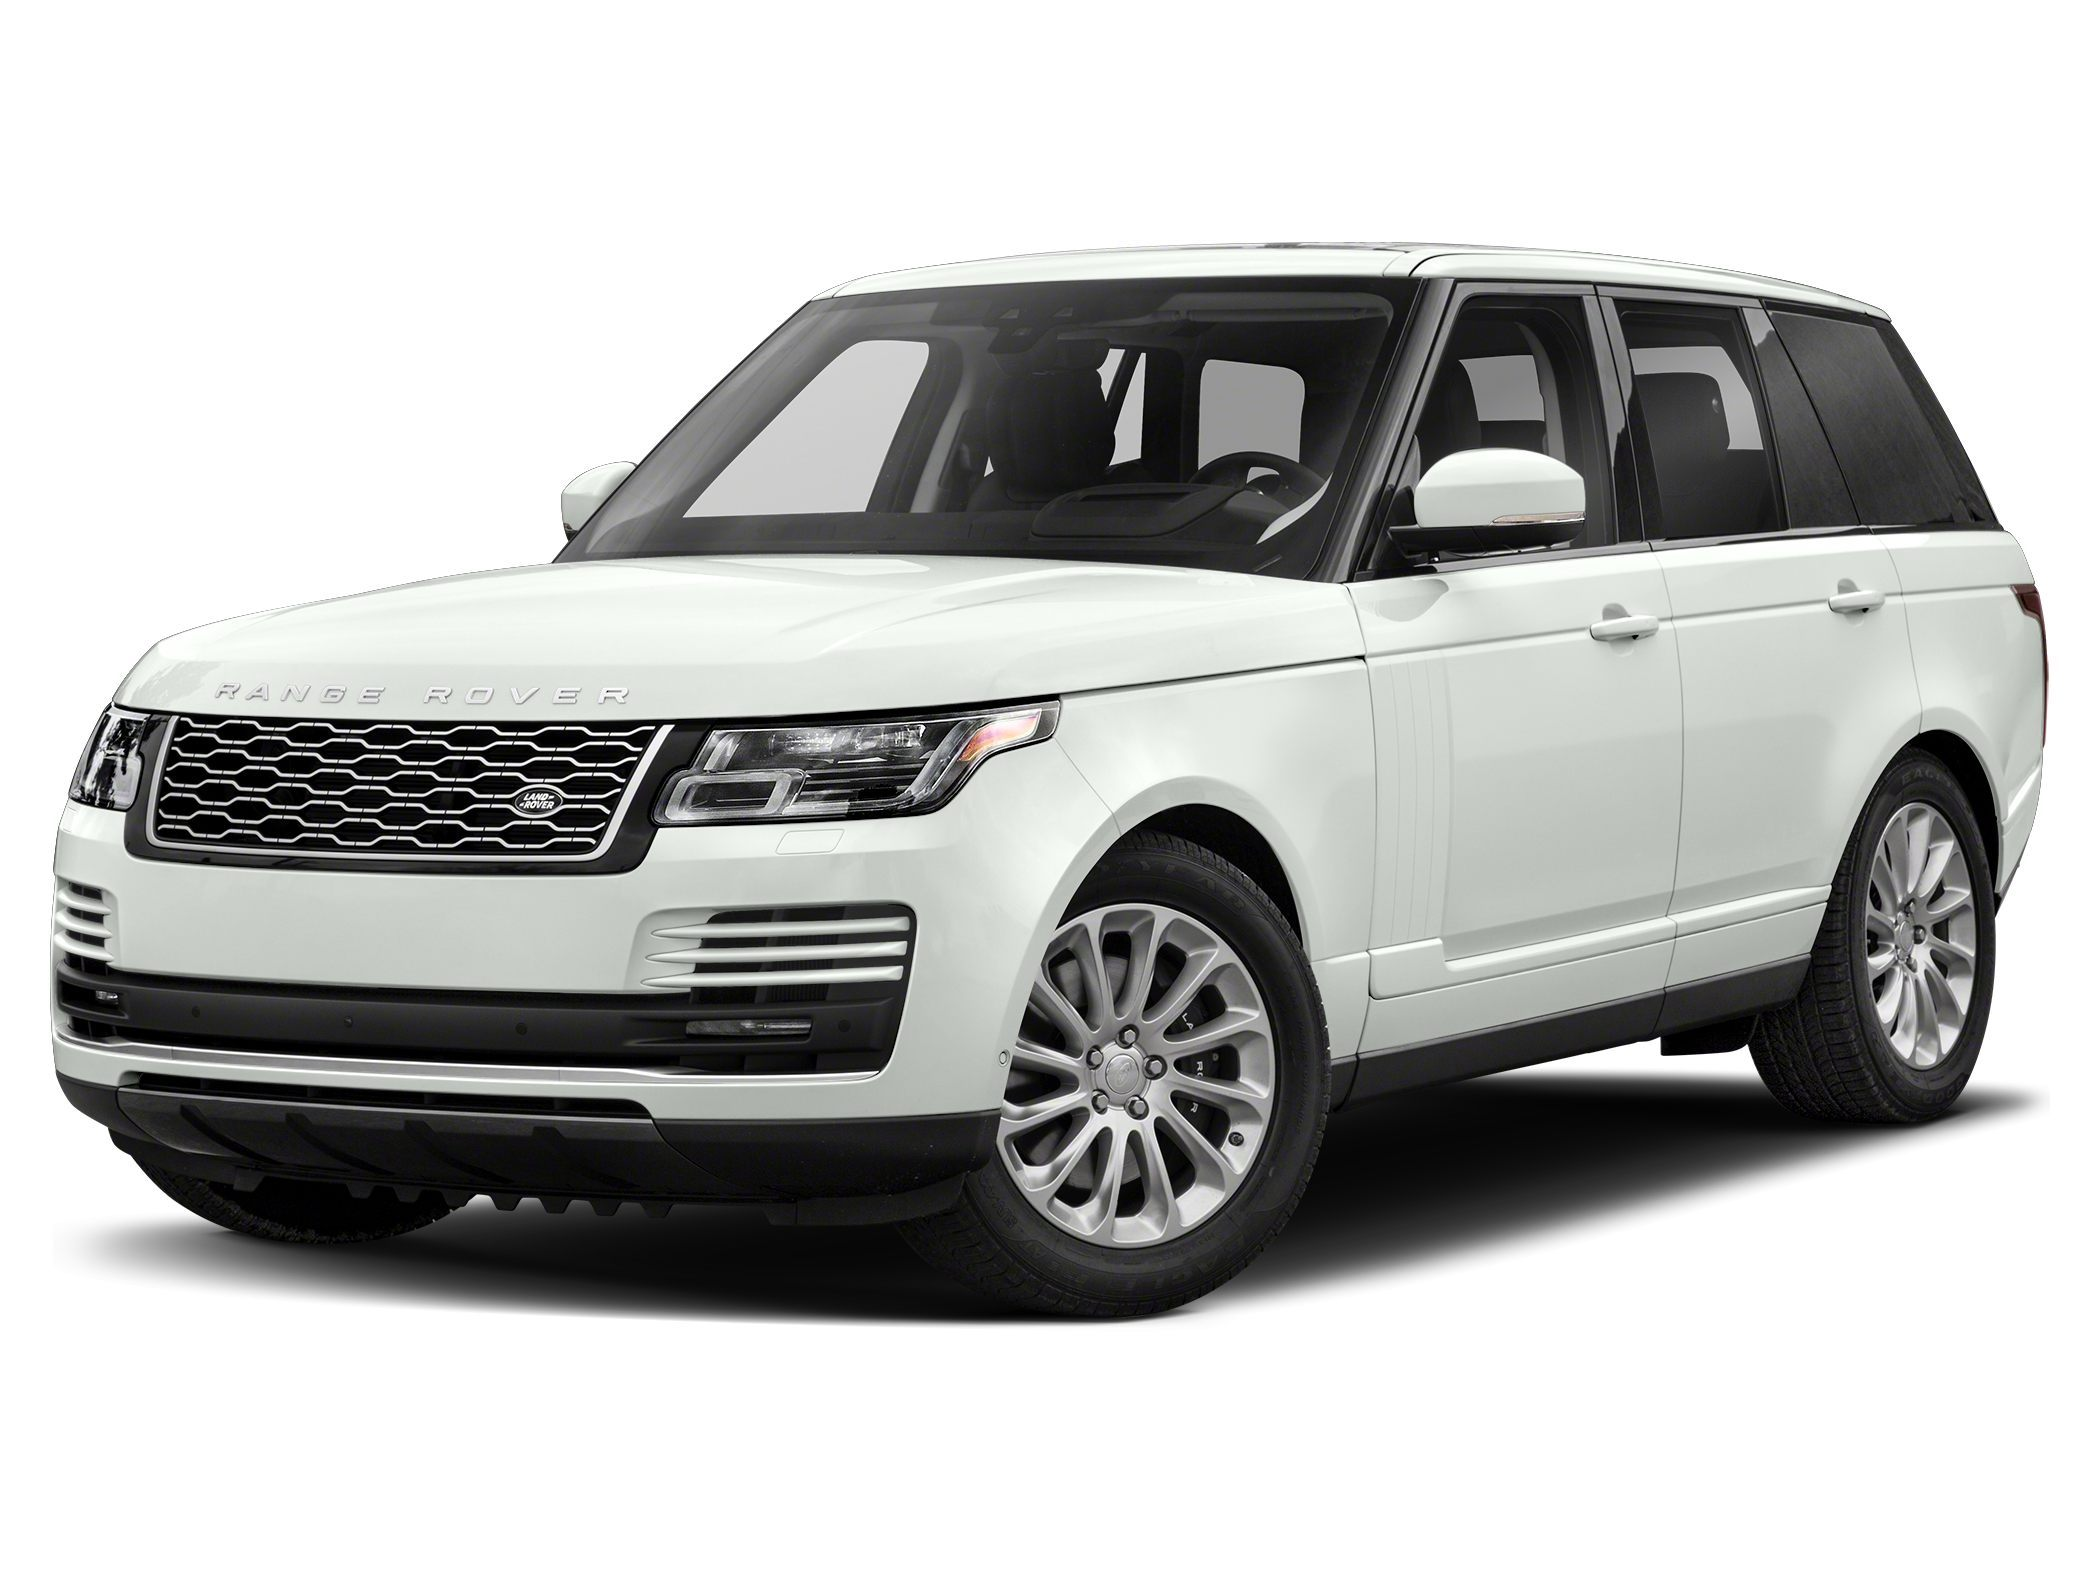 2022 Land Rover Range Rover AWD Westminster Edition MHEV SUV